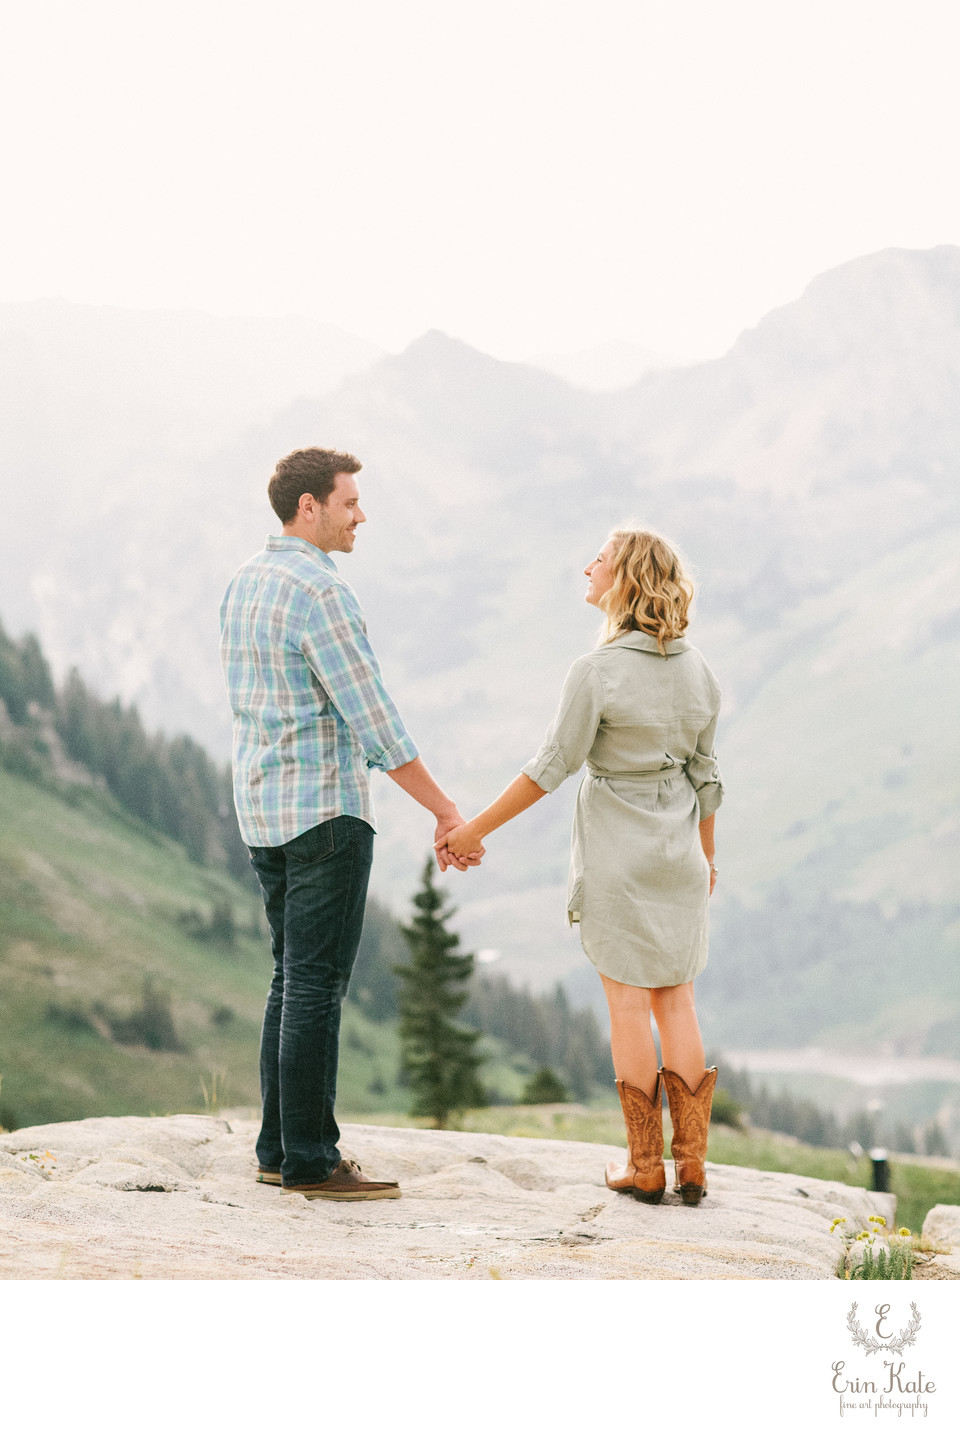 Albion Basin Engagement Session in July